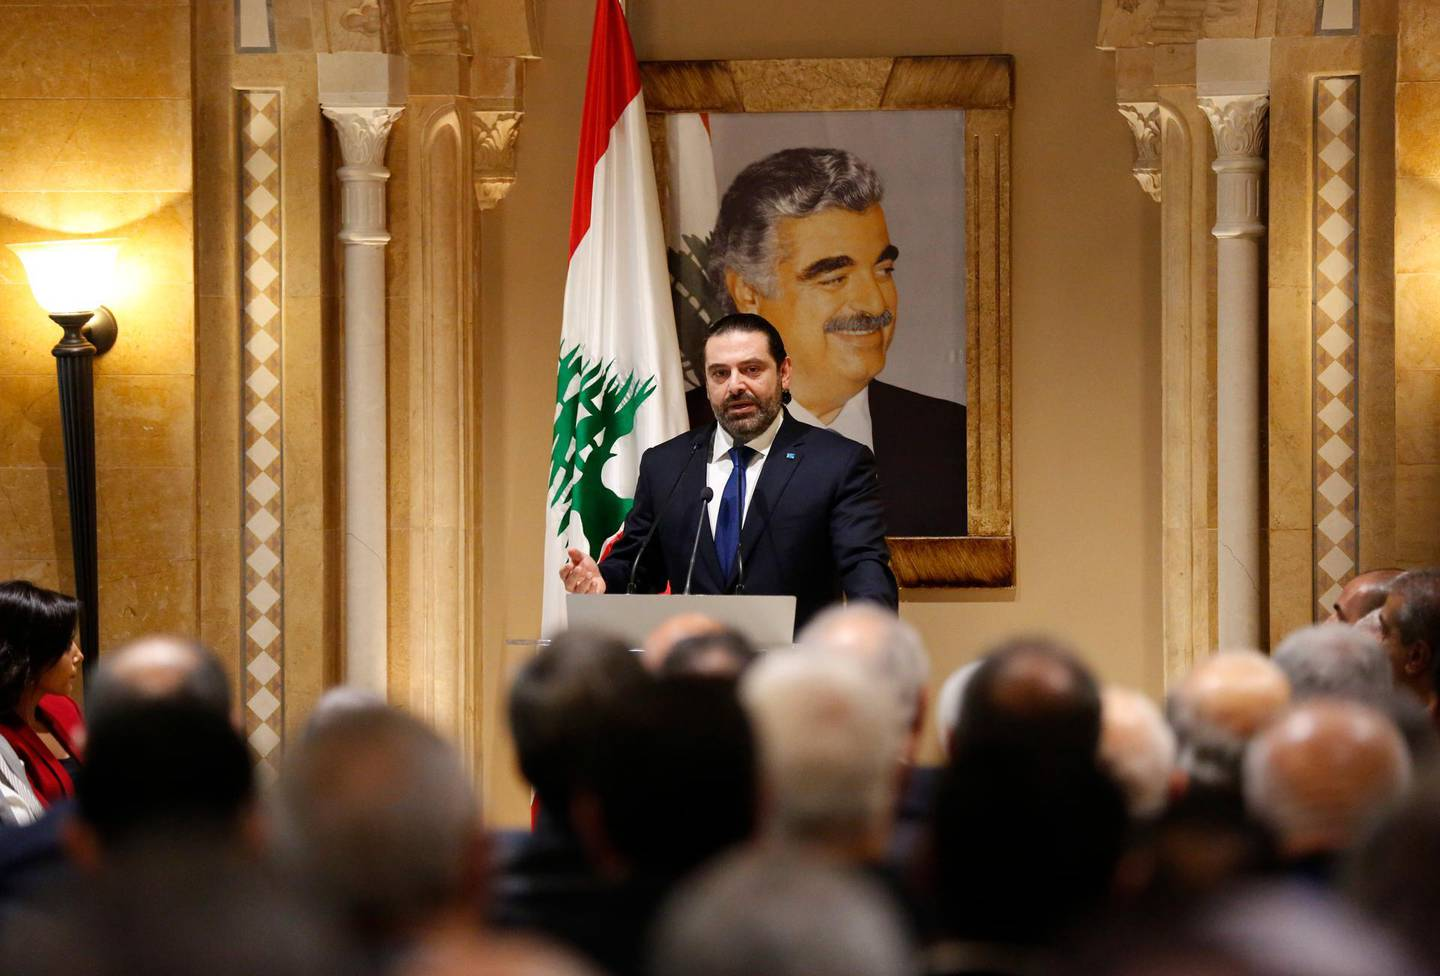 Lebanese Prime Minister-designate Saad Hariri, speaks during a press conference, in Beirut, Lebanon, Tuesday, Nov. 13, 2018. Hariri accused Hezbollah of hindering the formation of a new government six months after parliamentary elections. He said the Shiite militant group bears full responsibility for the consequences, including Lebanon's flagging economy. (AP Photo/Hussein Malla)